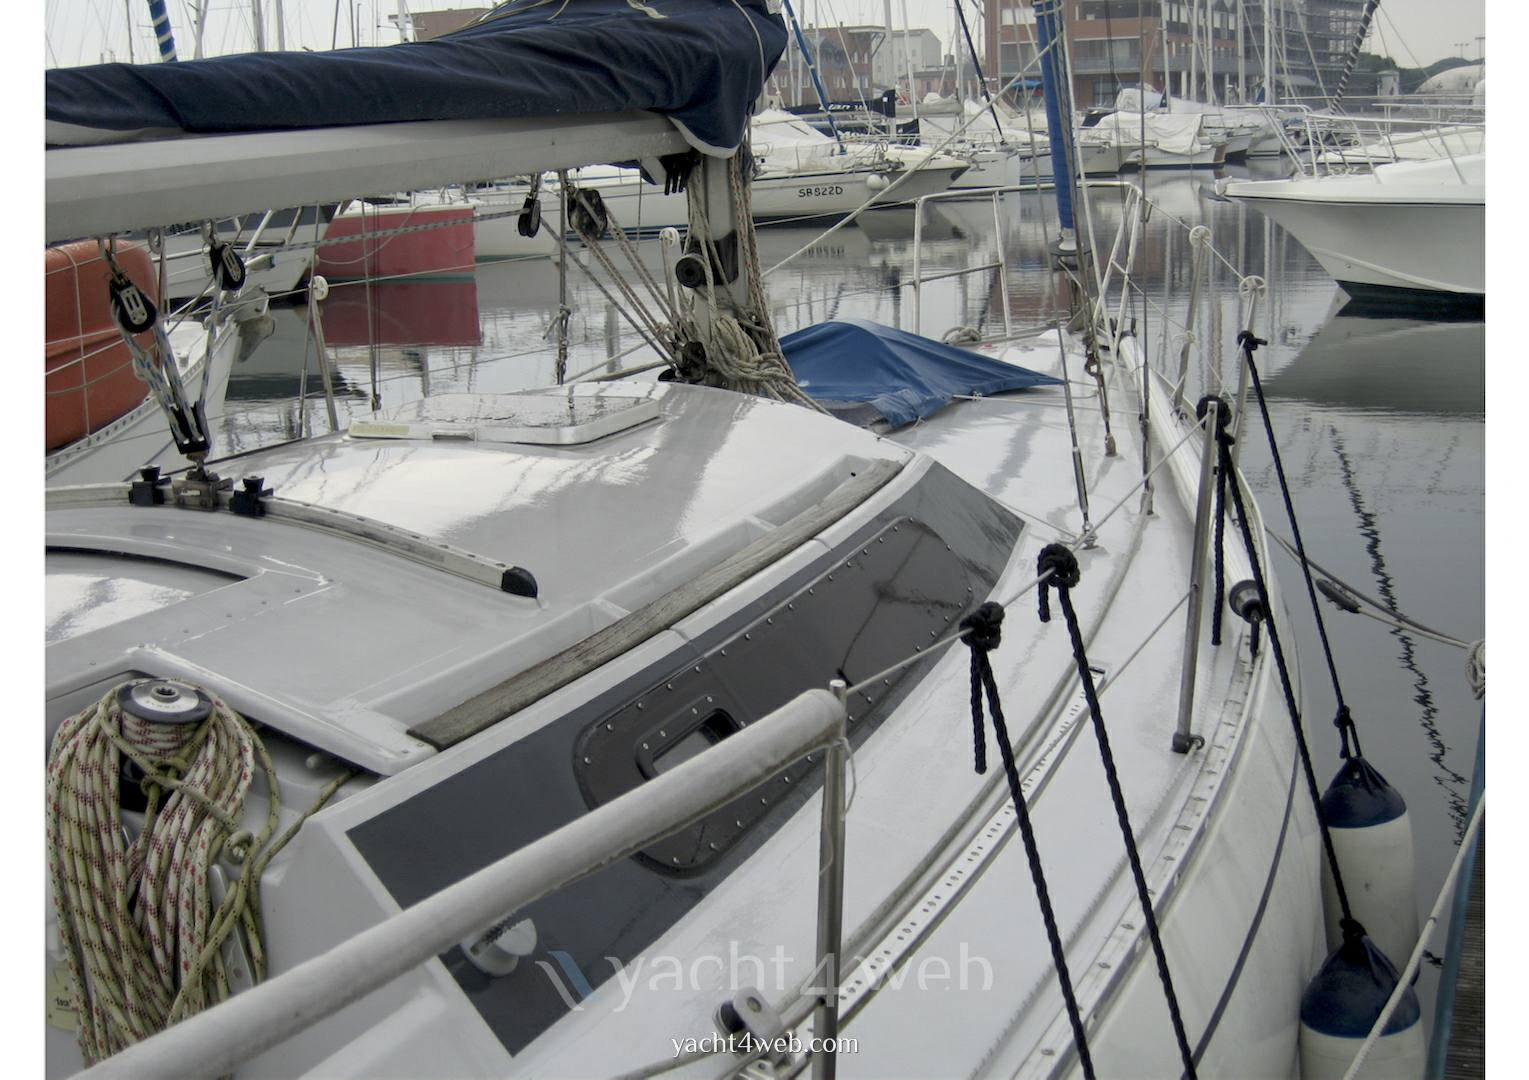 Cantire-del-pardo Grand soleil 34 Sailing boat used for sale